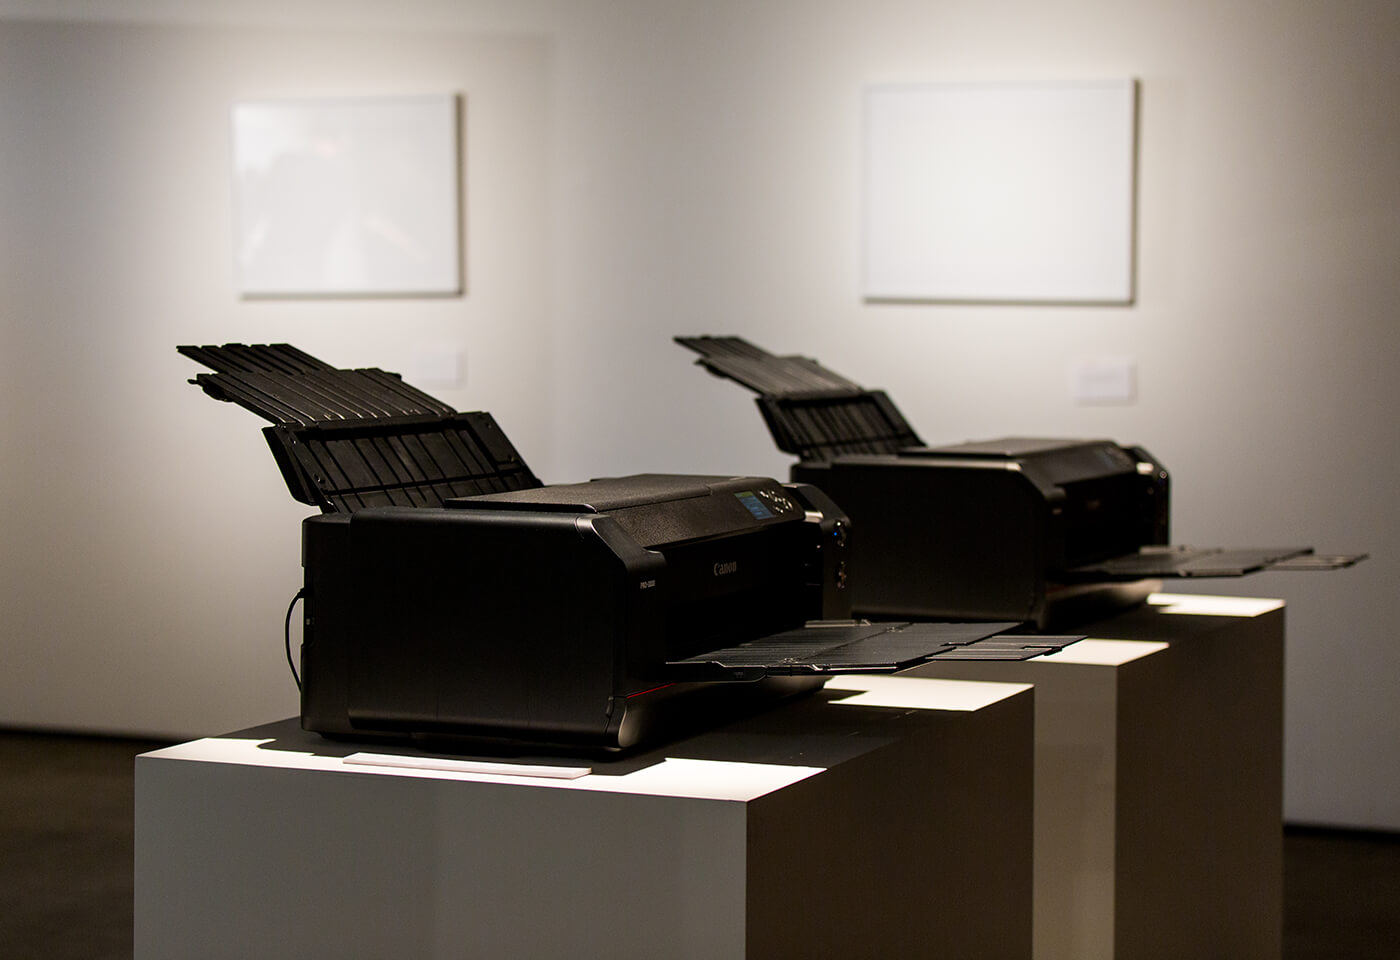 Image of two printers on display stands